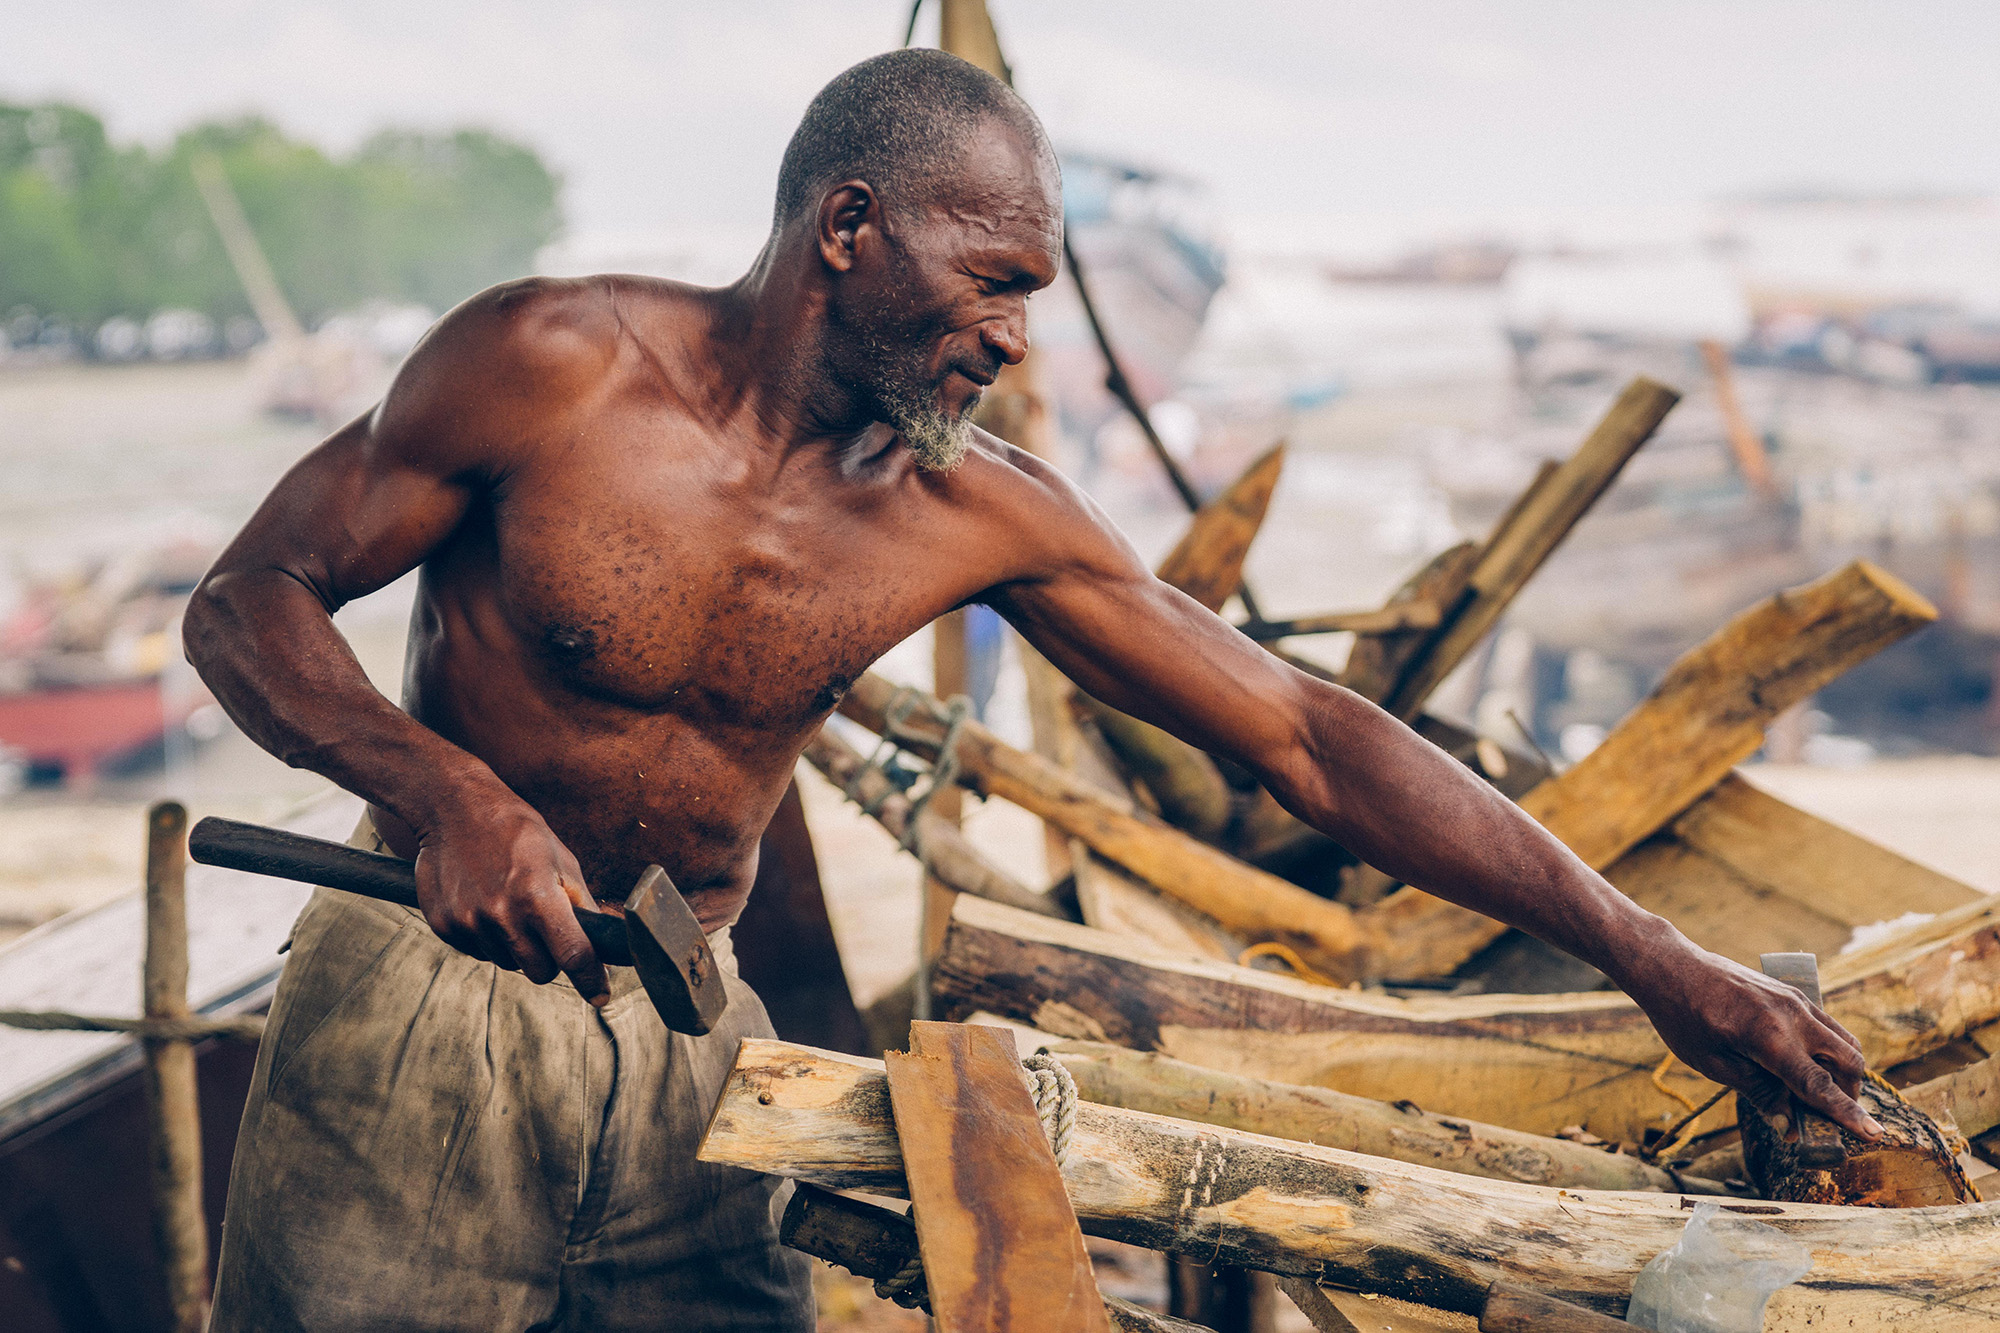 A traditional boat builder in Zanzibar